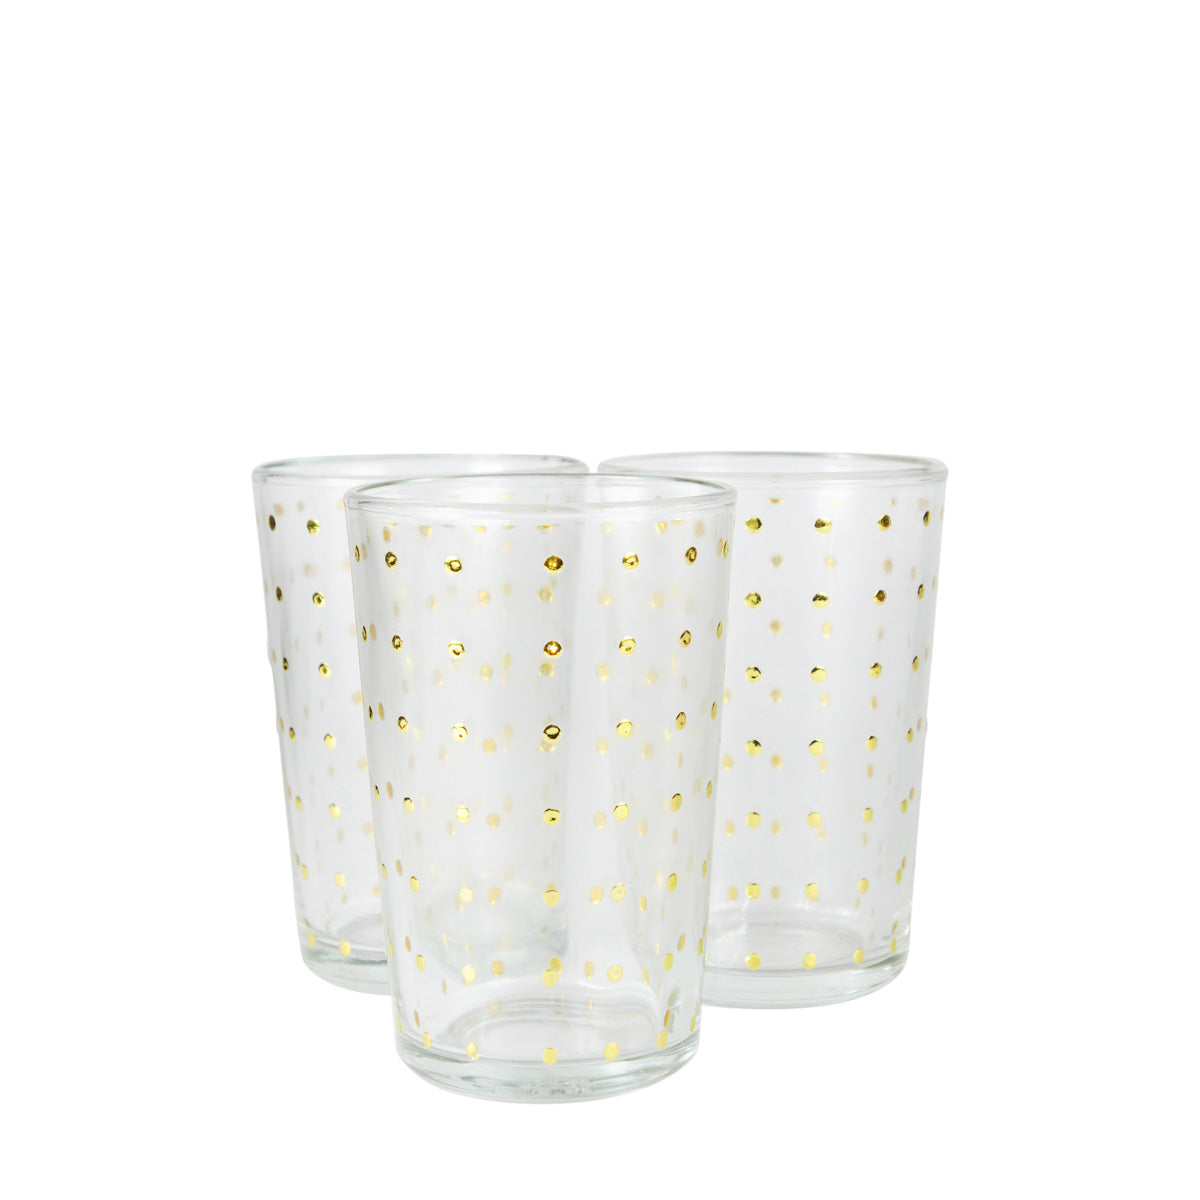 Gold Polka Dot Tea Glasses (Set of 6)